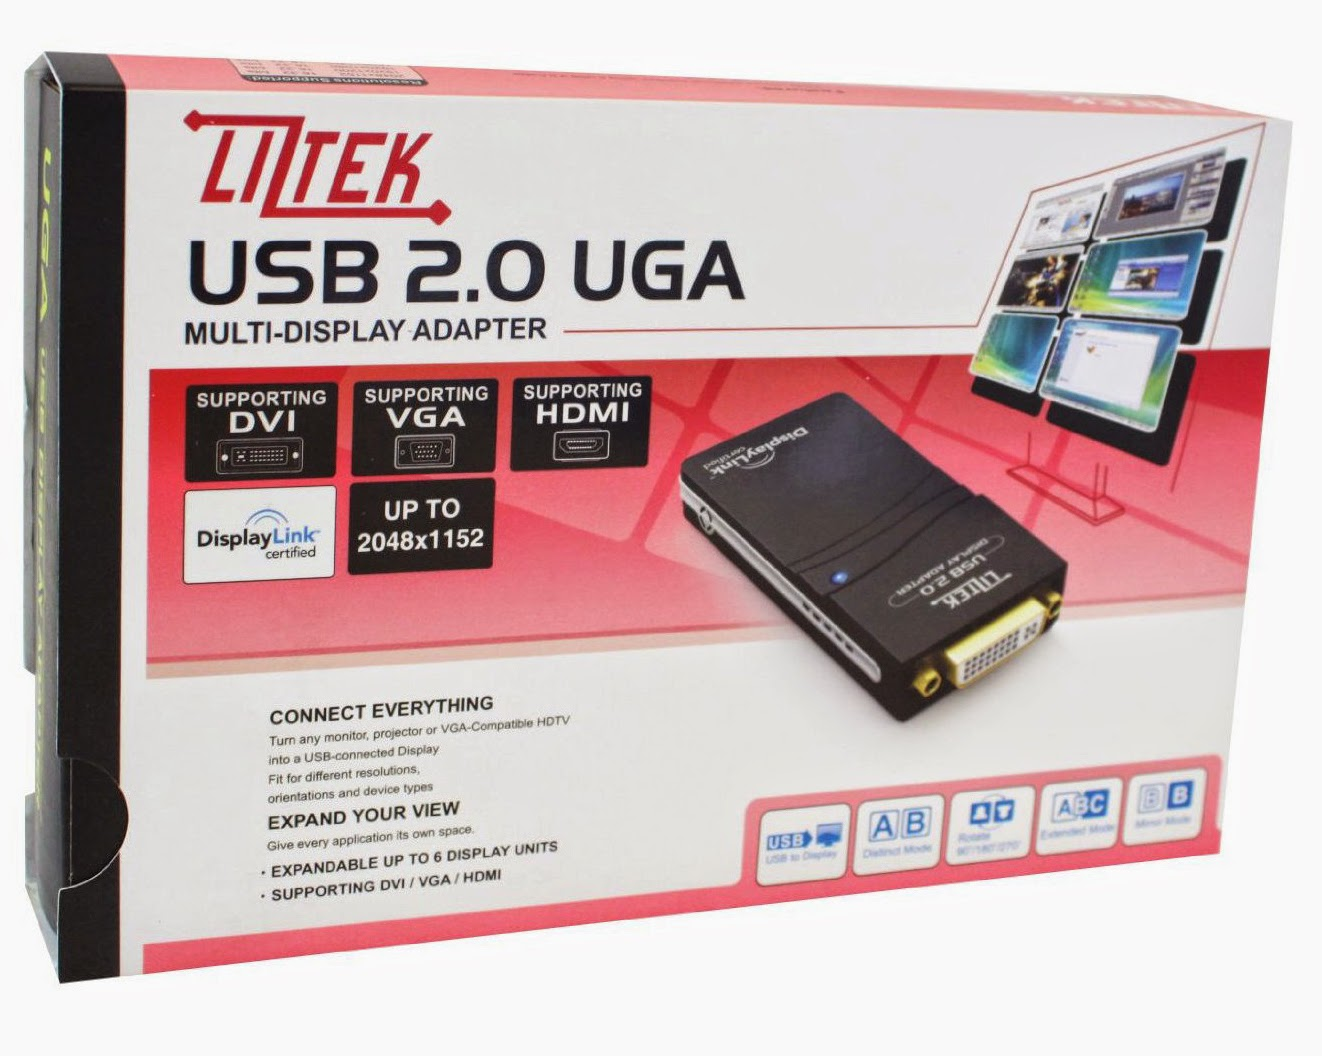 Liztek USB 2.0 to VGA/DVI/HDMI VGA / DVI / HDMI Video Graphics Adapter